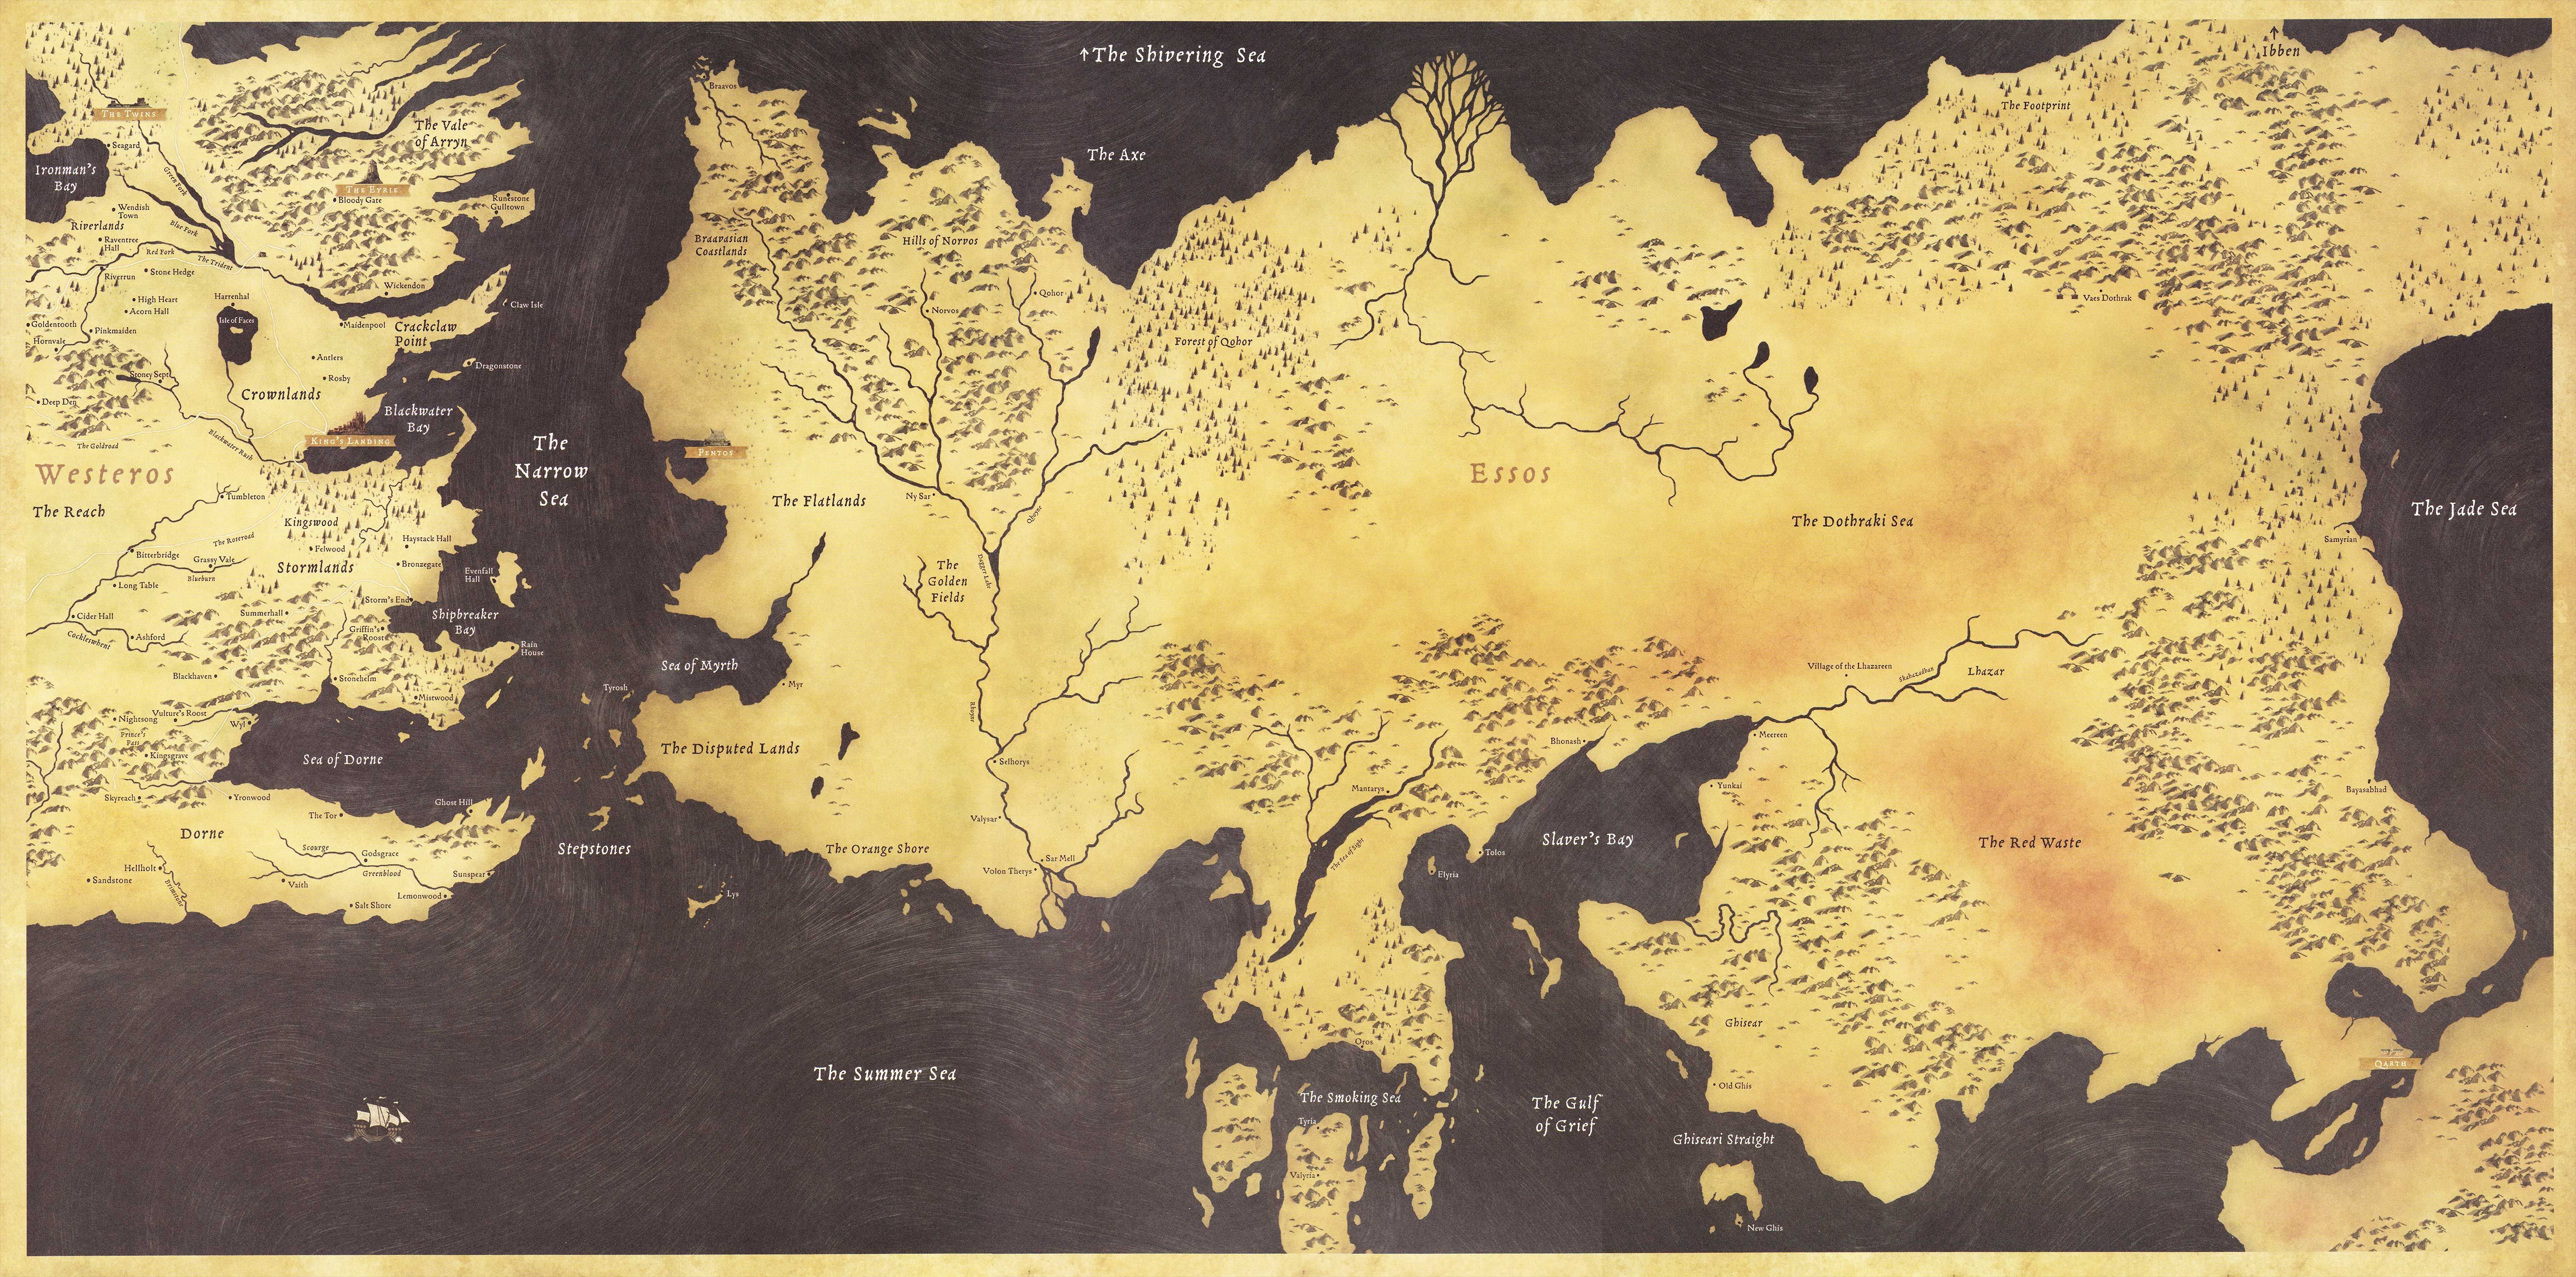 Game Of Thrones Map Wallpaper 1920x1080 Posted By Zoey Johnson